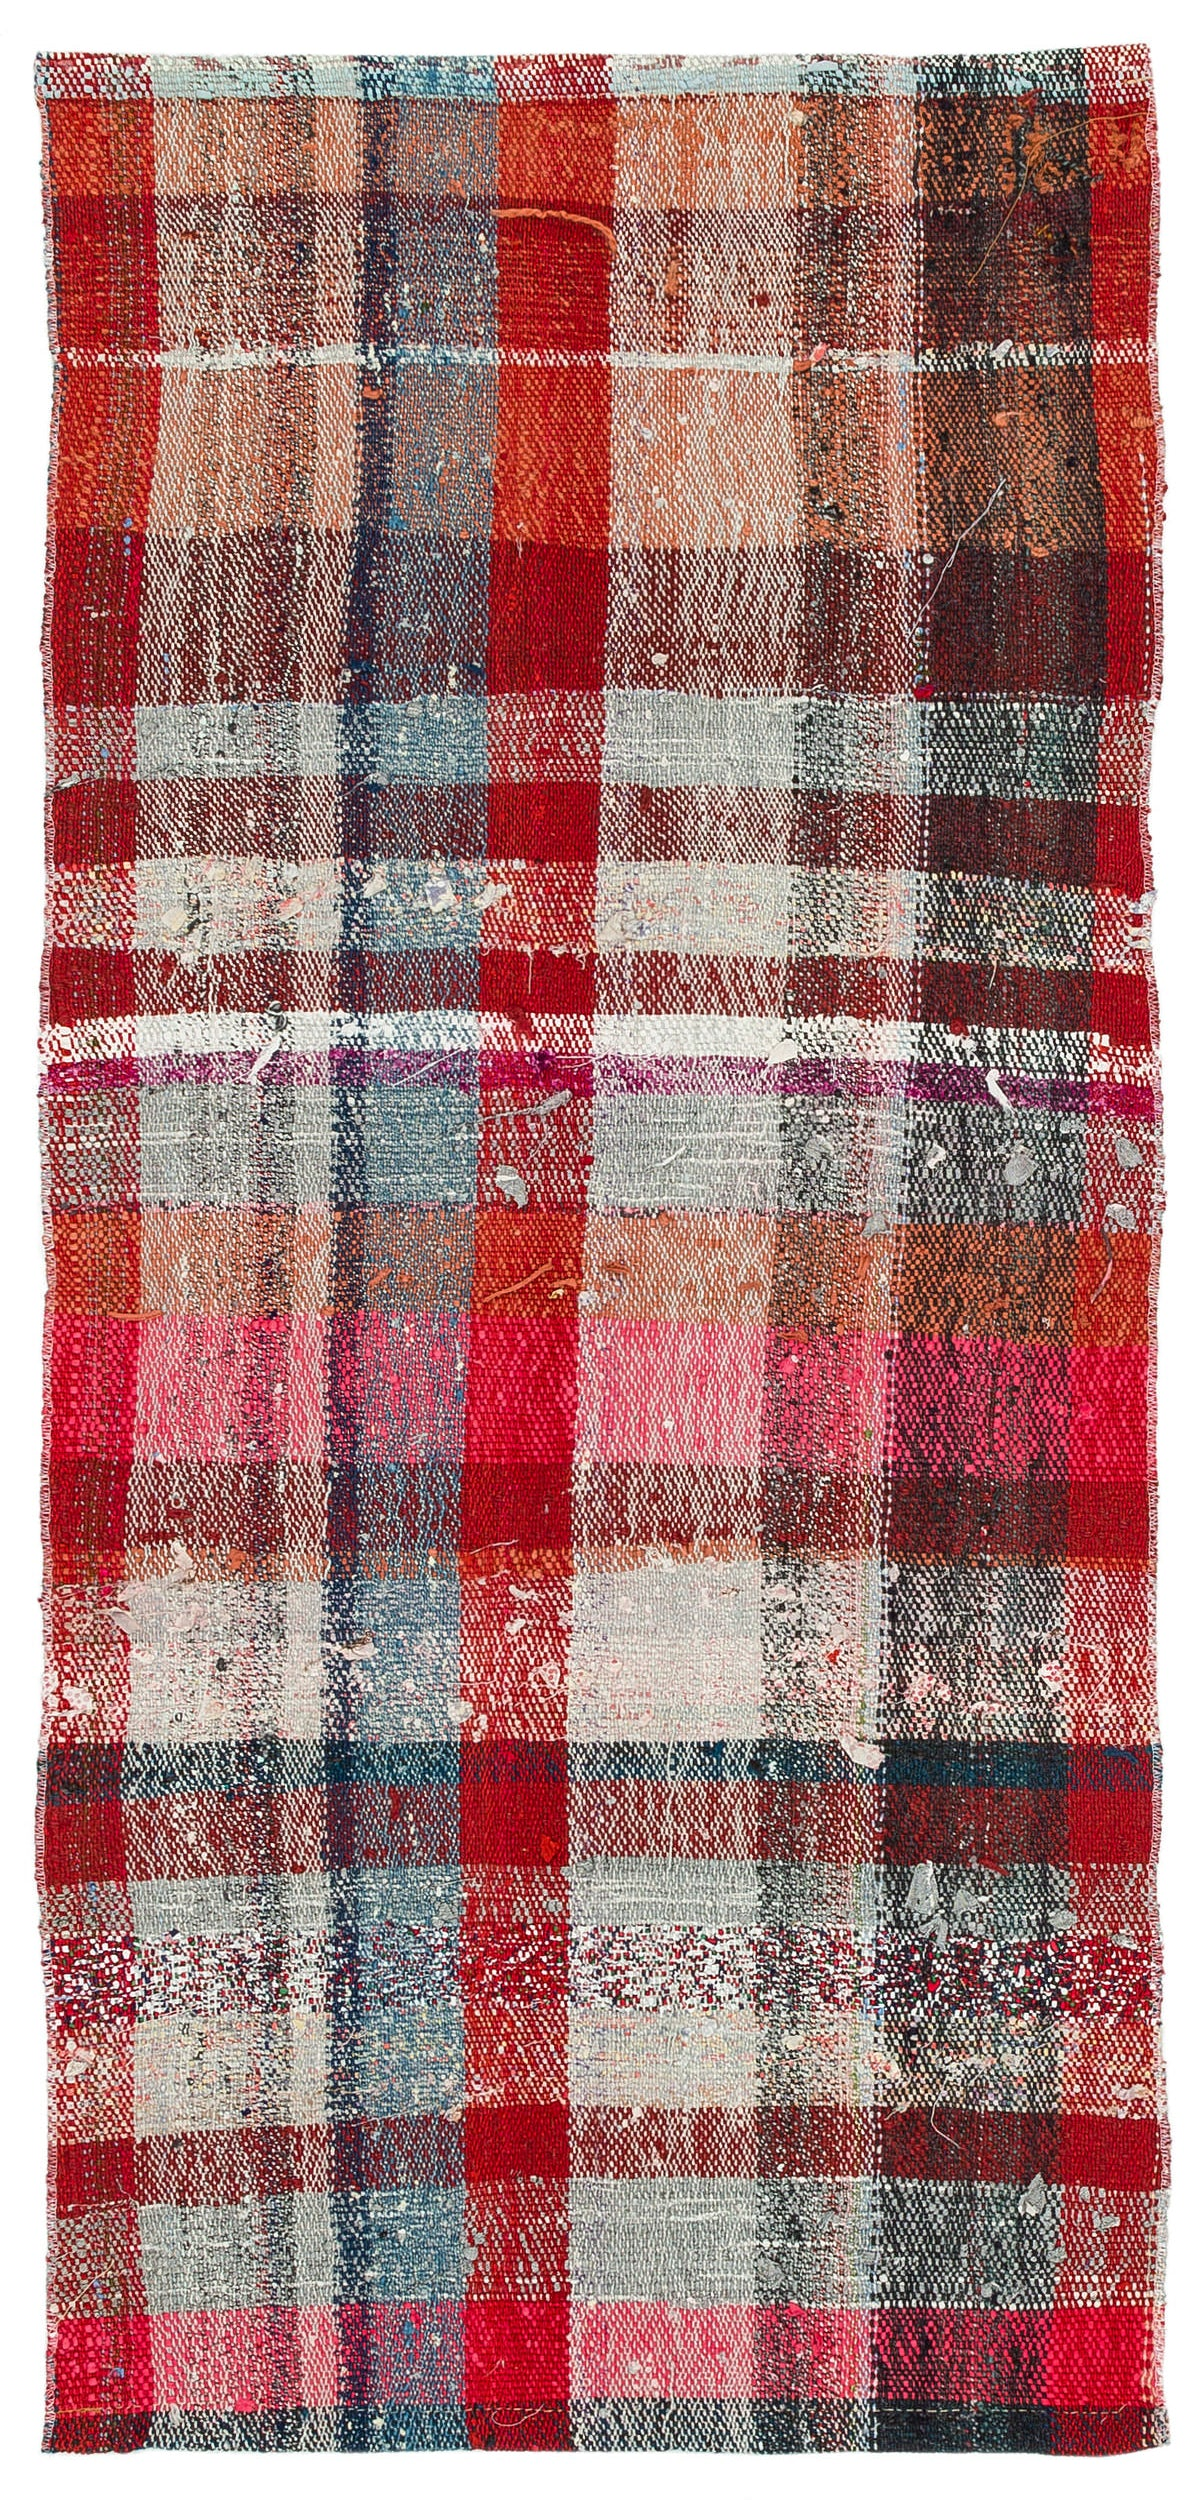 Chaput Over Dyed Kilim Rug 2'4'' x 4'11'' ft 70 x 150 cm